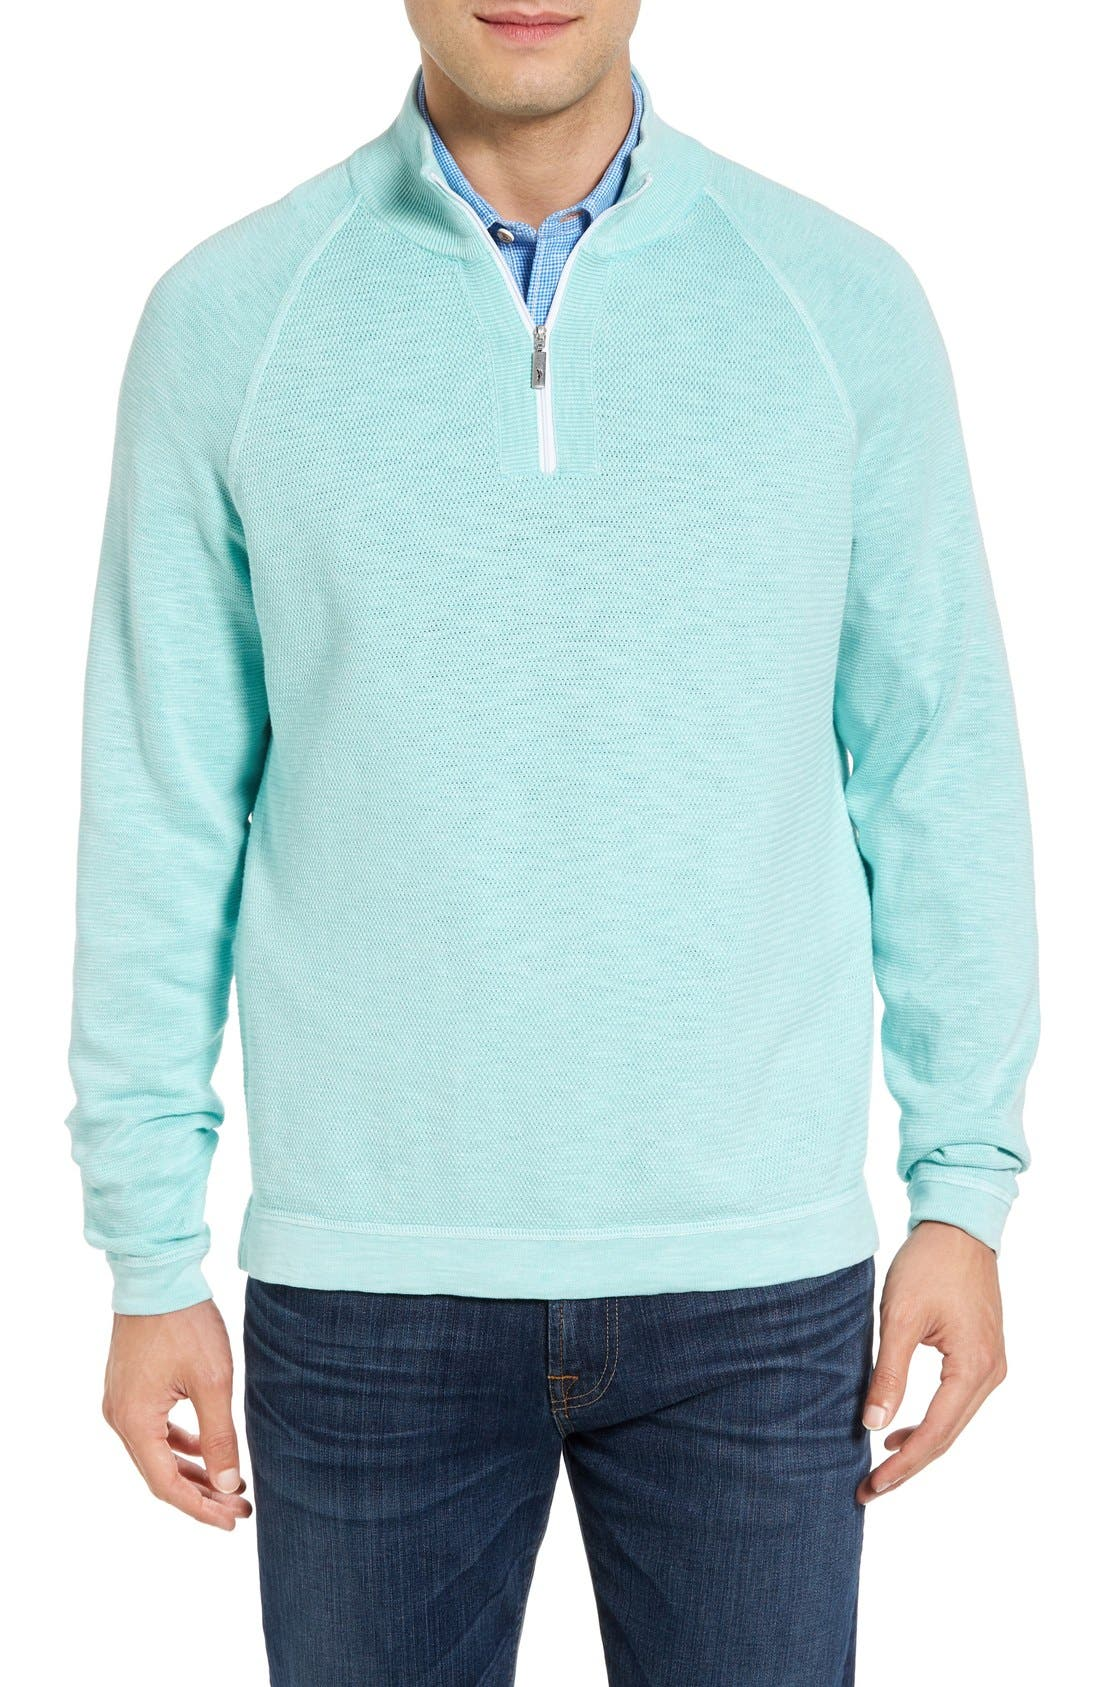 Saltwater Tide Half Zip Pullover,                             Main thumbnail 1, color,                             Aquarius